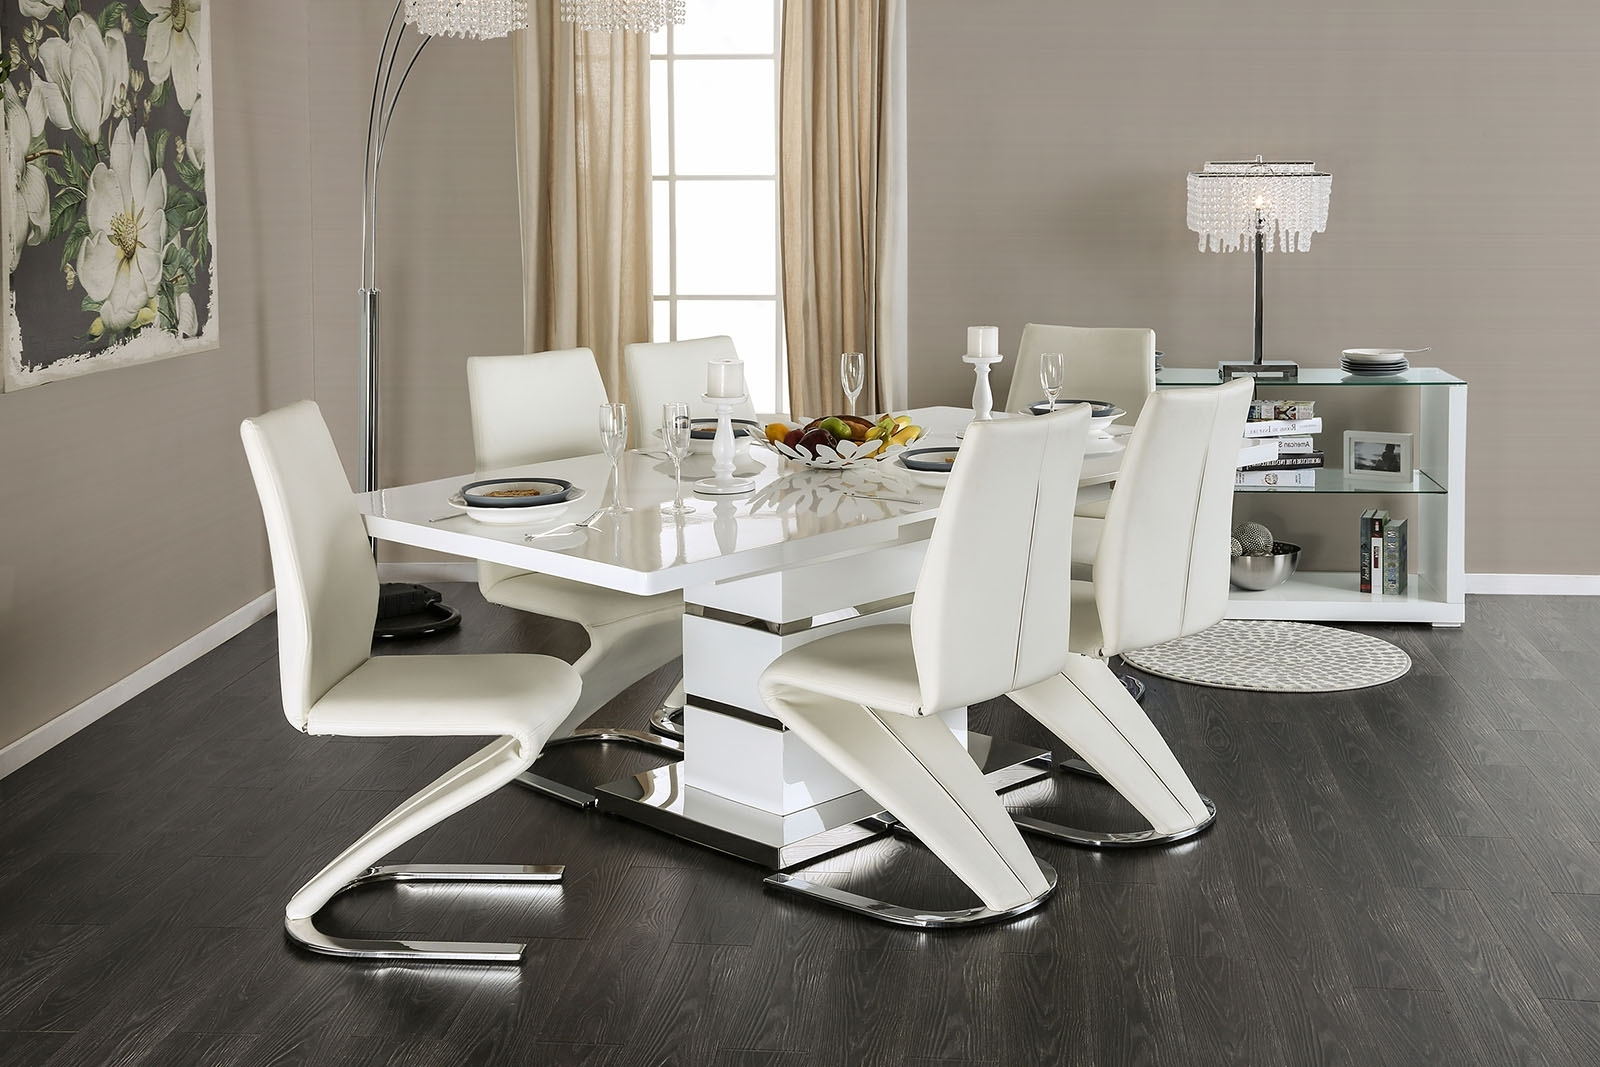 Widely Used White High Gloss Dining Chairs For Midvale Contemporary Style White High Gloss Lacquer Finish & Chrome (View 7 of 25)